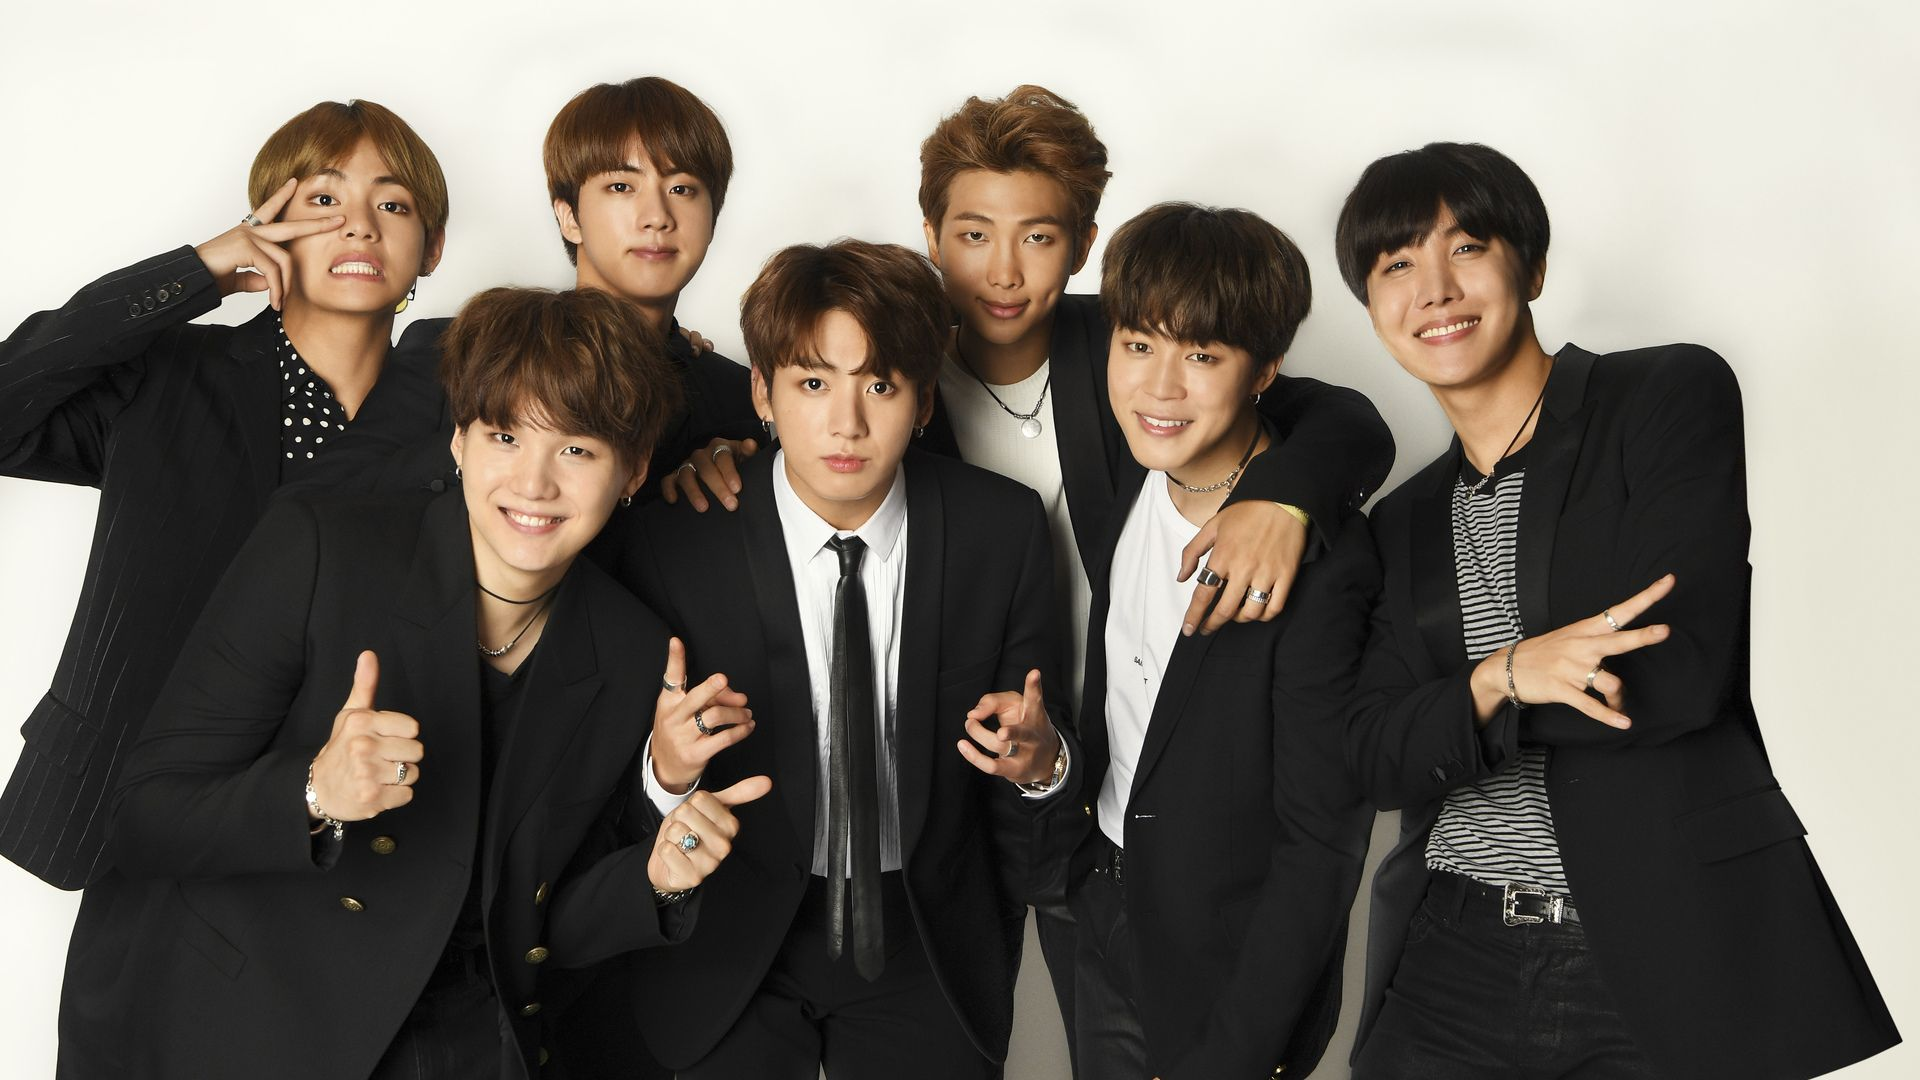 bts group photo, bts backgrounds